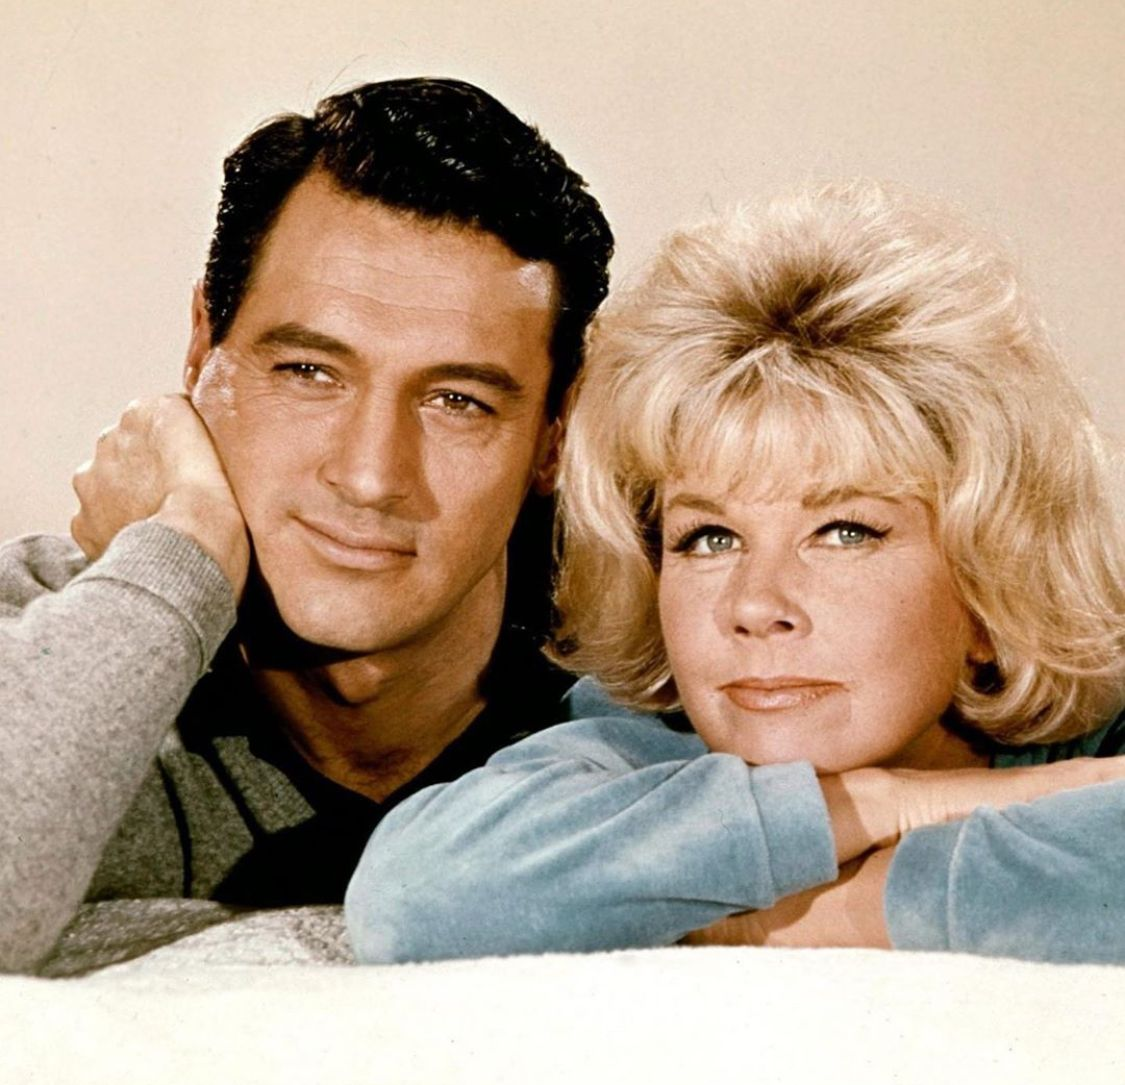 Rock Hudson Doris Day From Their 1964 Film Send Me No Flowers Doris Day Movies Rock Hudson Hollywood Couples